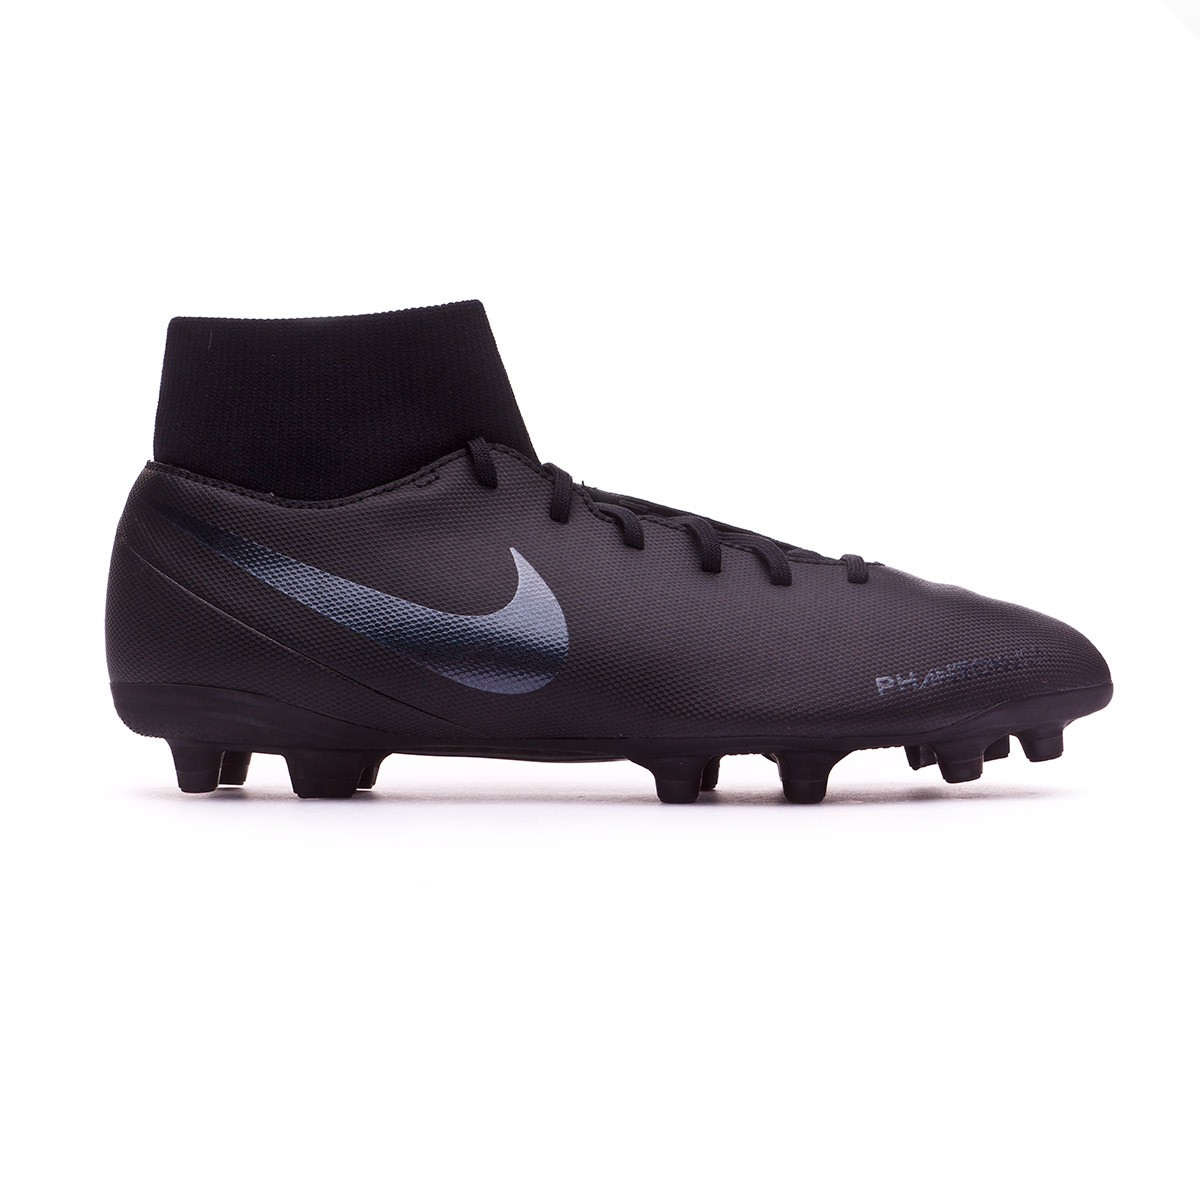 f9deb4831b433 Football Boots Nike Phantom Vision Club DF MG Black - Tienda de fútbol  Fútbol Emotion